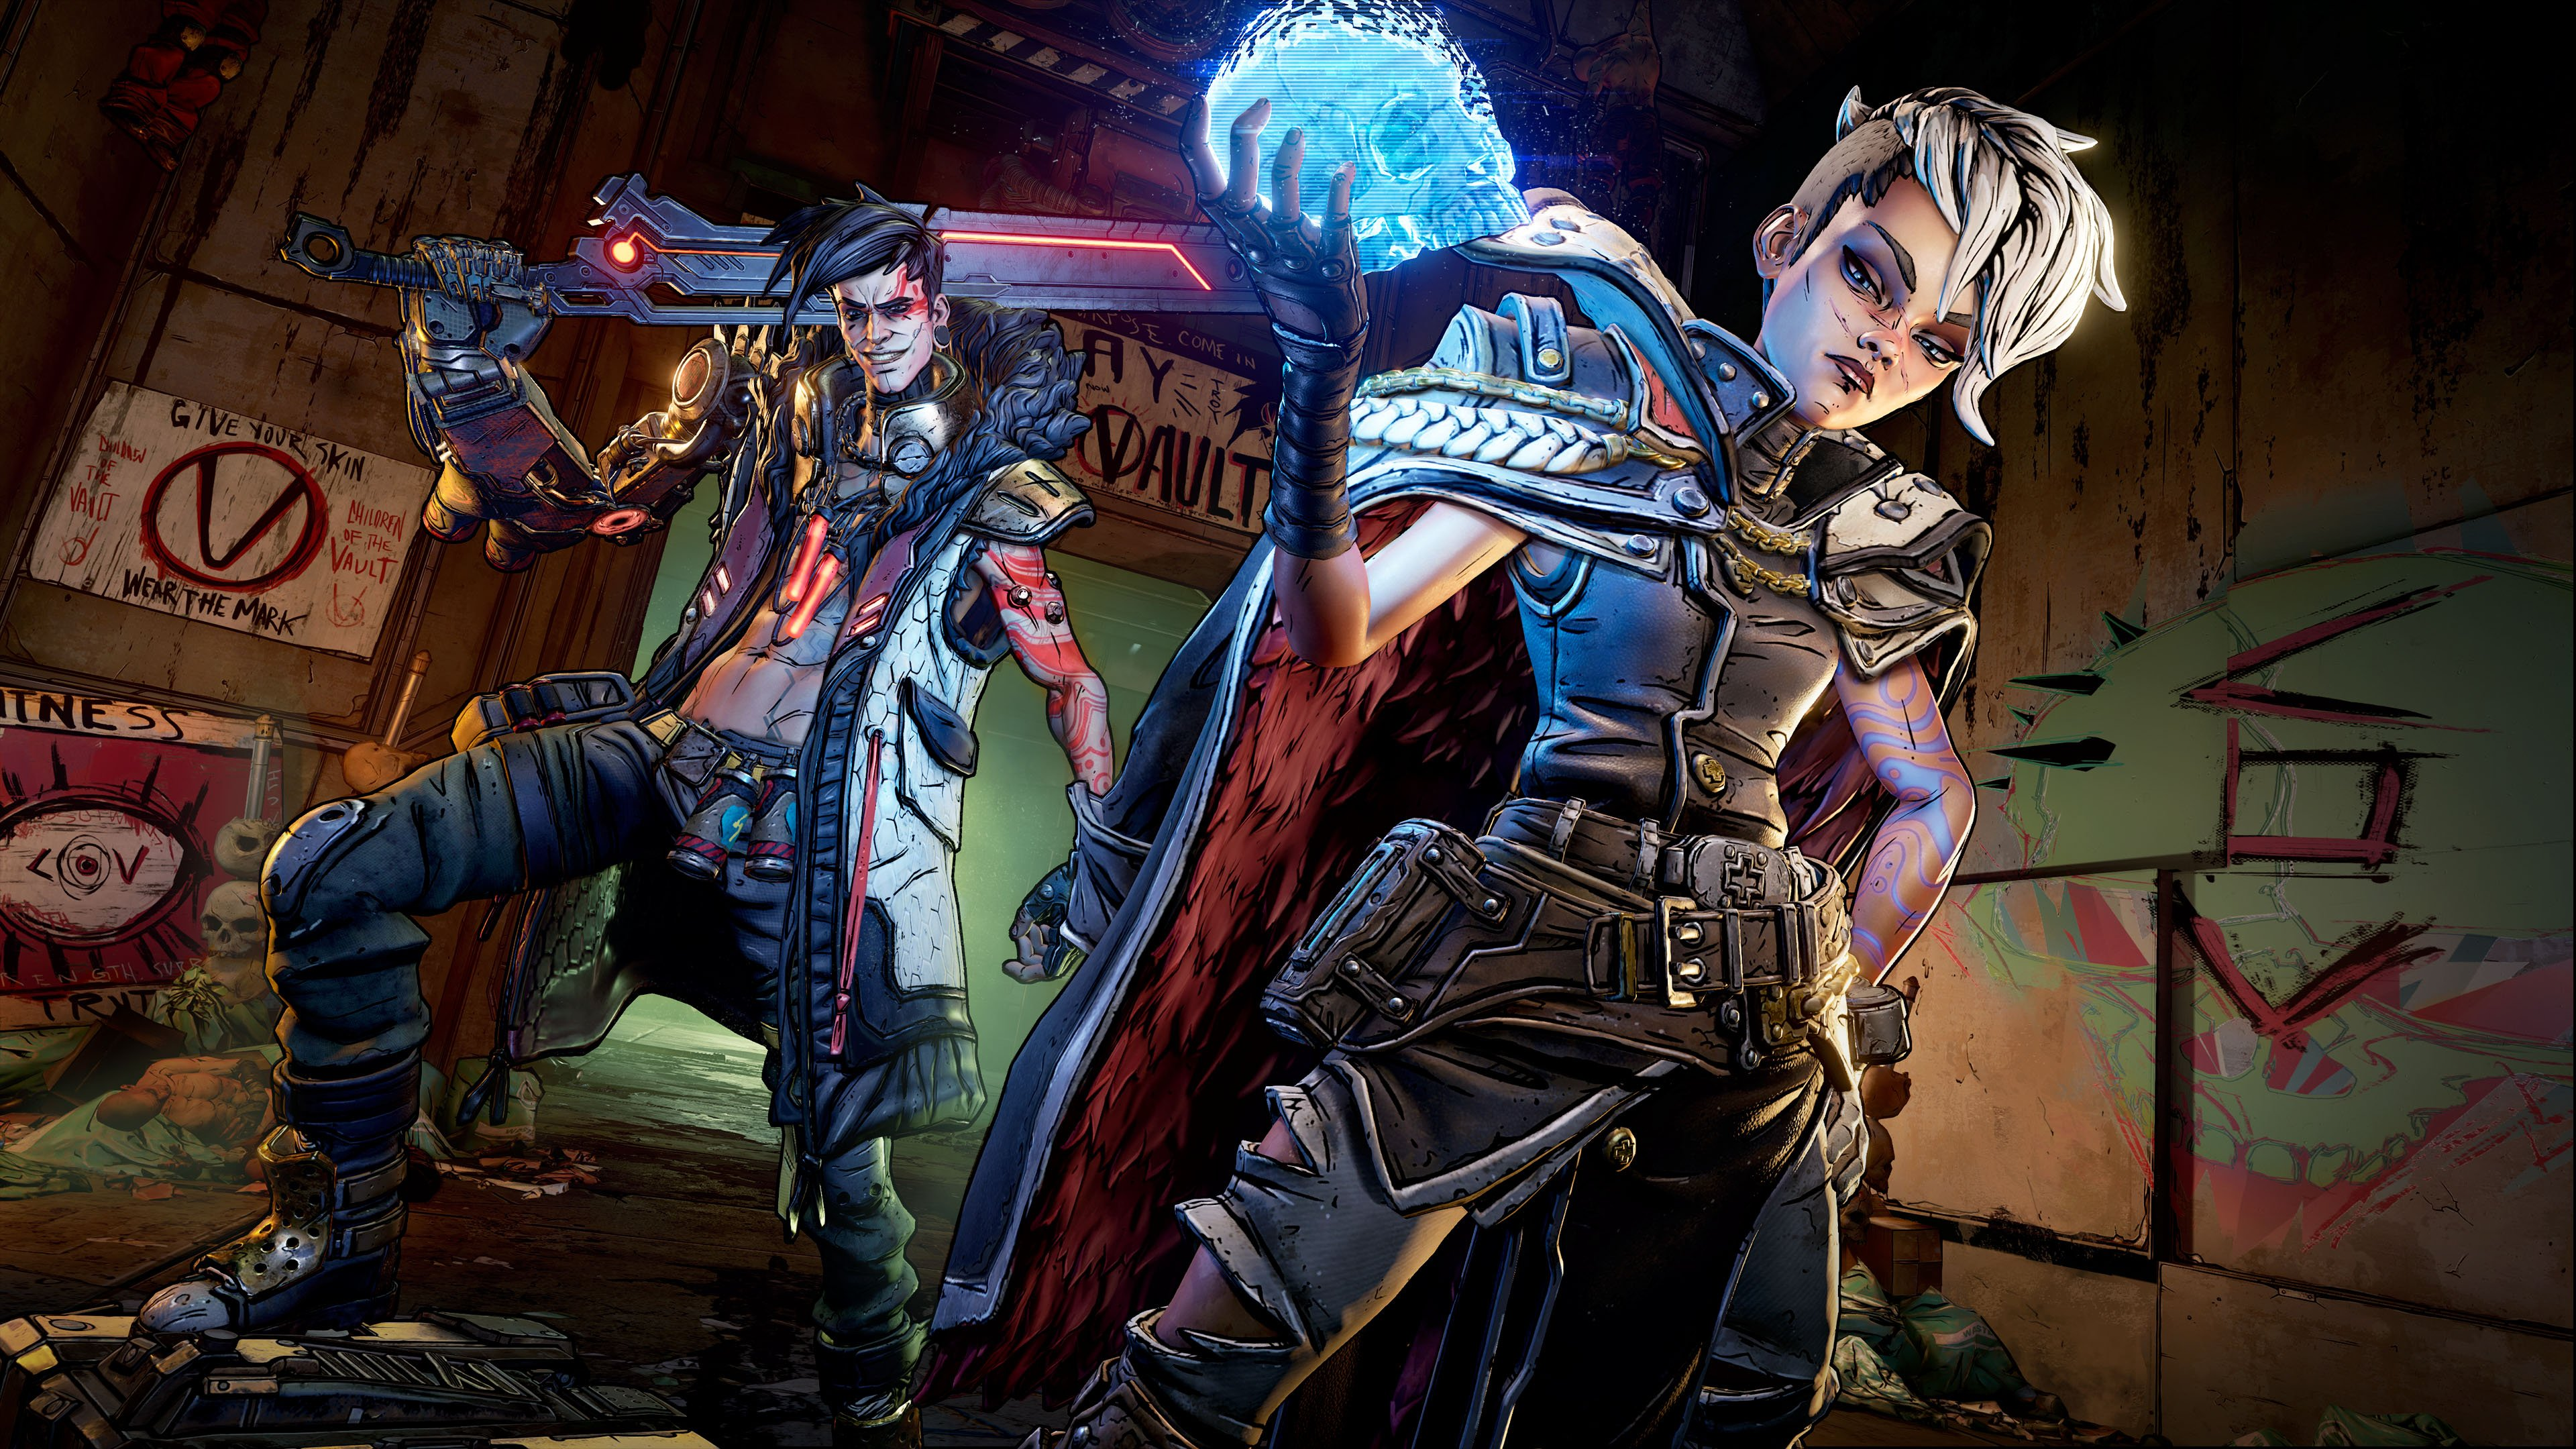 Borderlands 3 Video Game 2019 Photo Gallery Imdb In there is the official recognition that borderlands 3 is working on crossplay, and that fans should expect to hear more next year. borderlands 3 video game 2019 photo